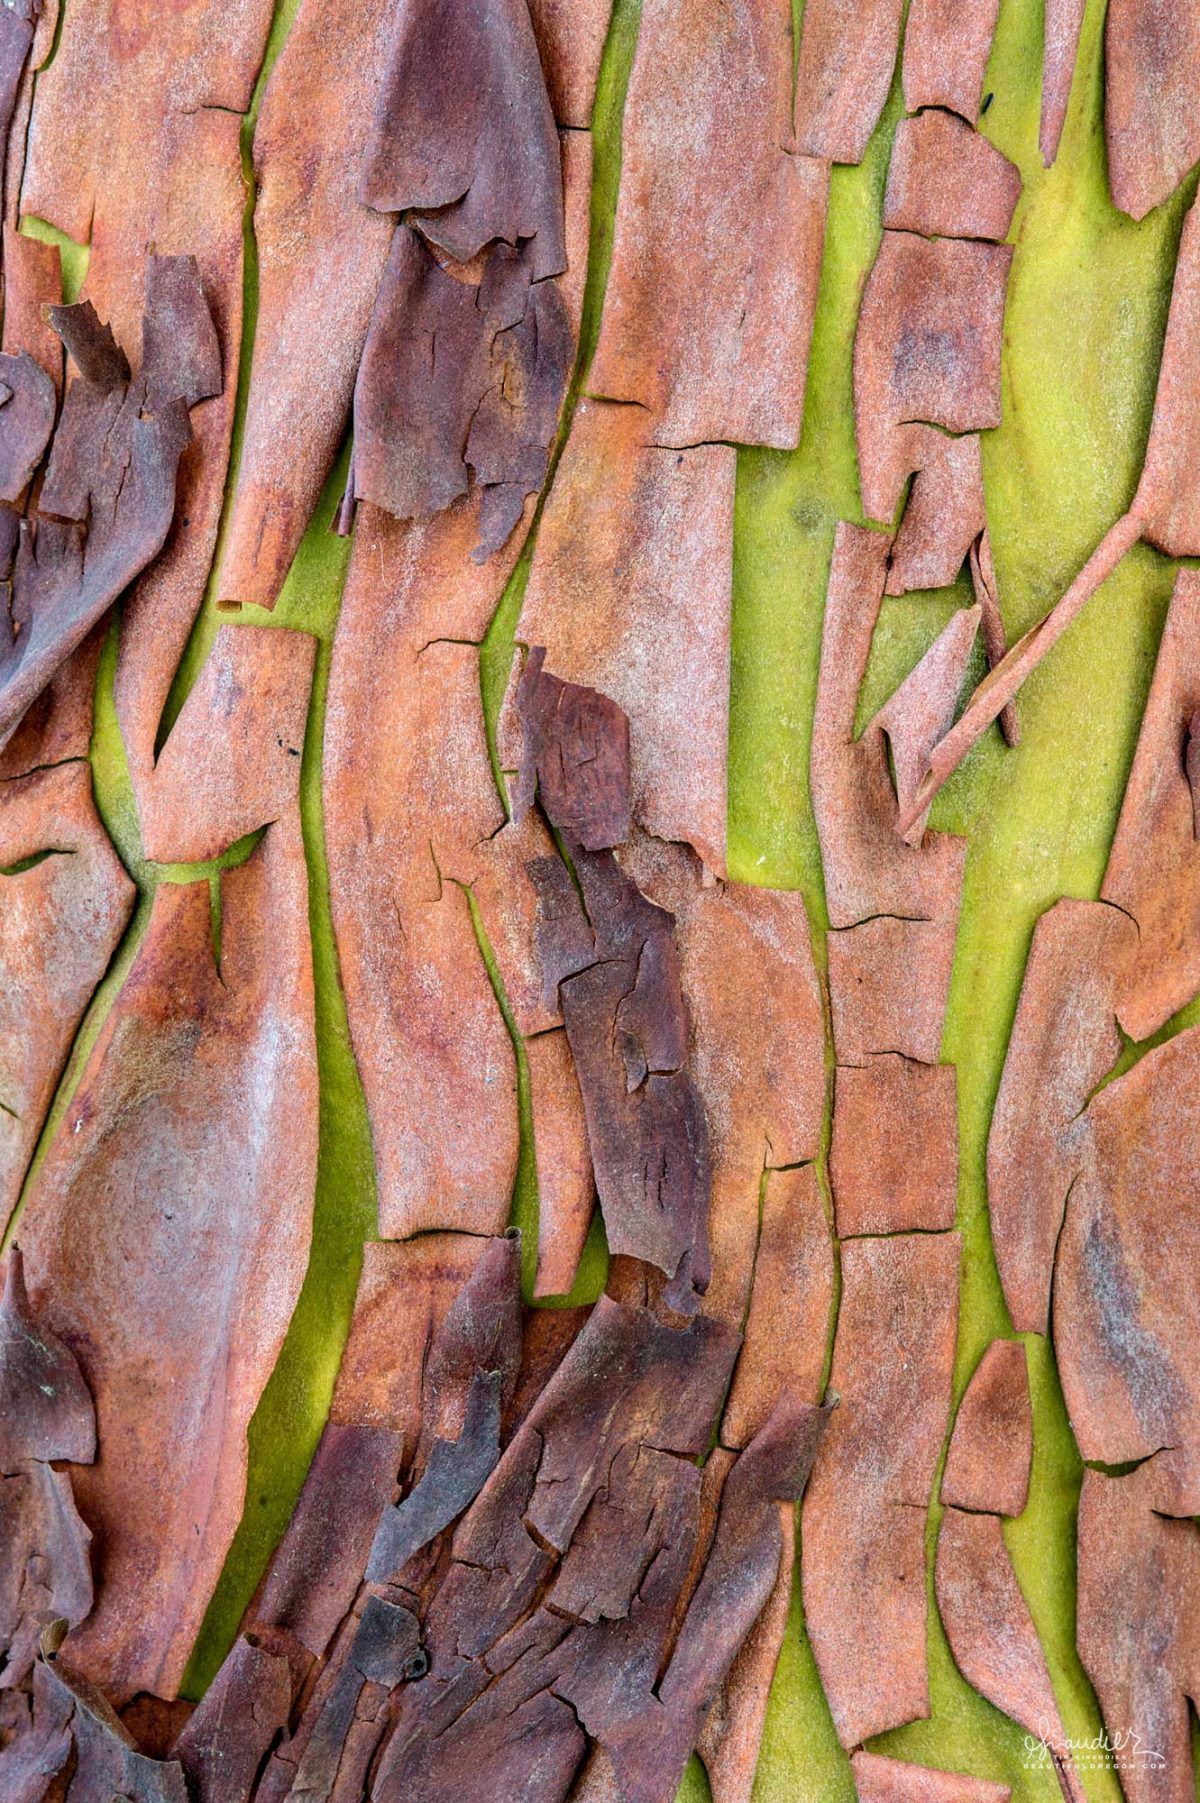 A Pacific Madrone tree sheds its outer bark in spring as the pistachio green of new bark develops beneath. Hendricks Park, Eugene Oregon.